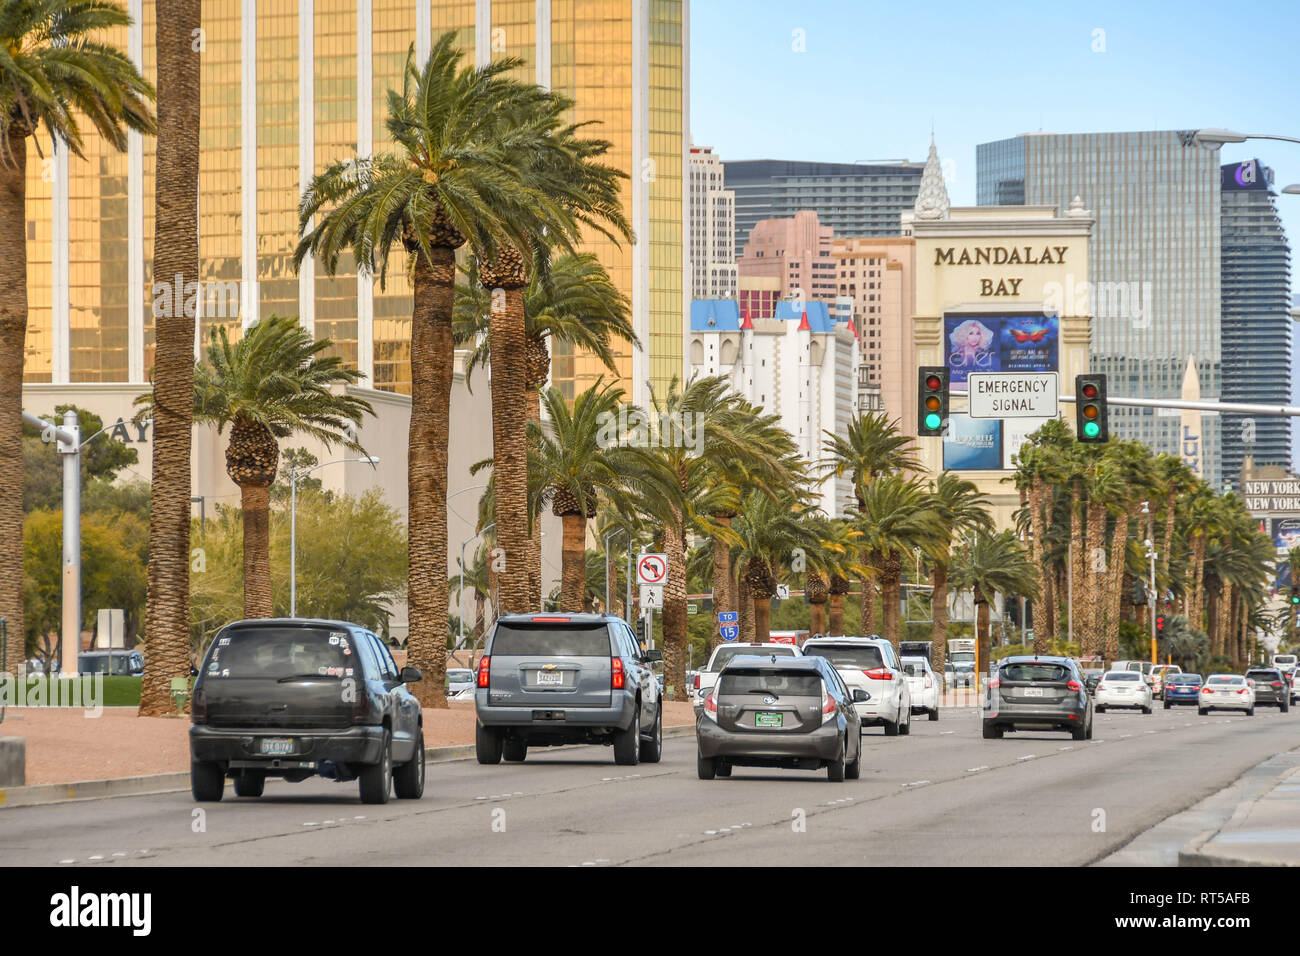 LAS VEGAS, NEVADA, USA - FEBRUARY 2019: Traffic northbound on Las